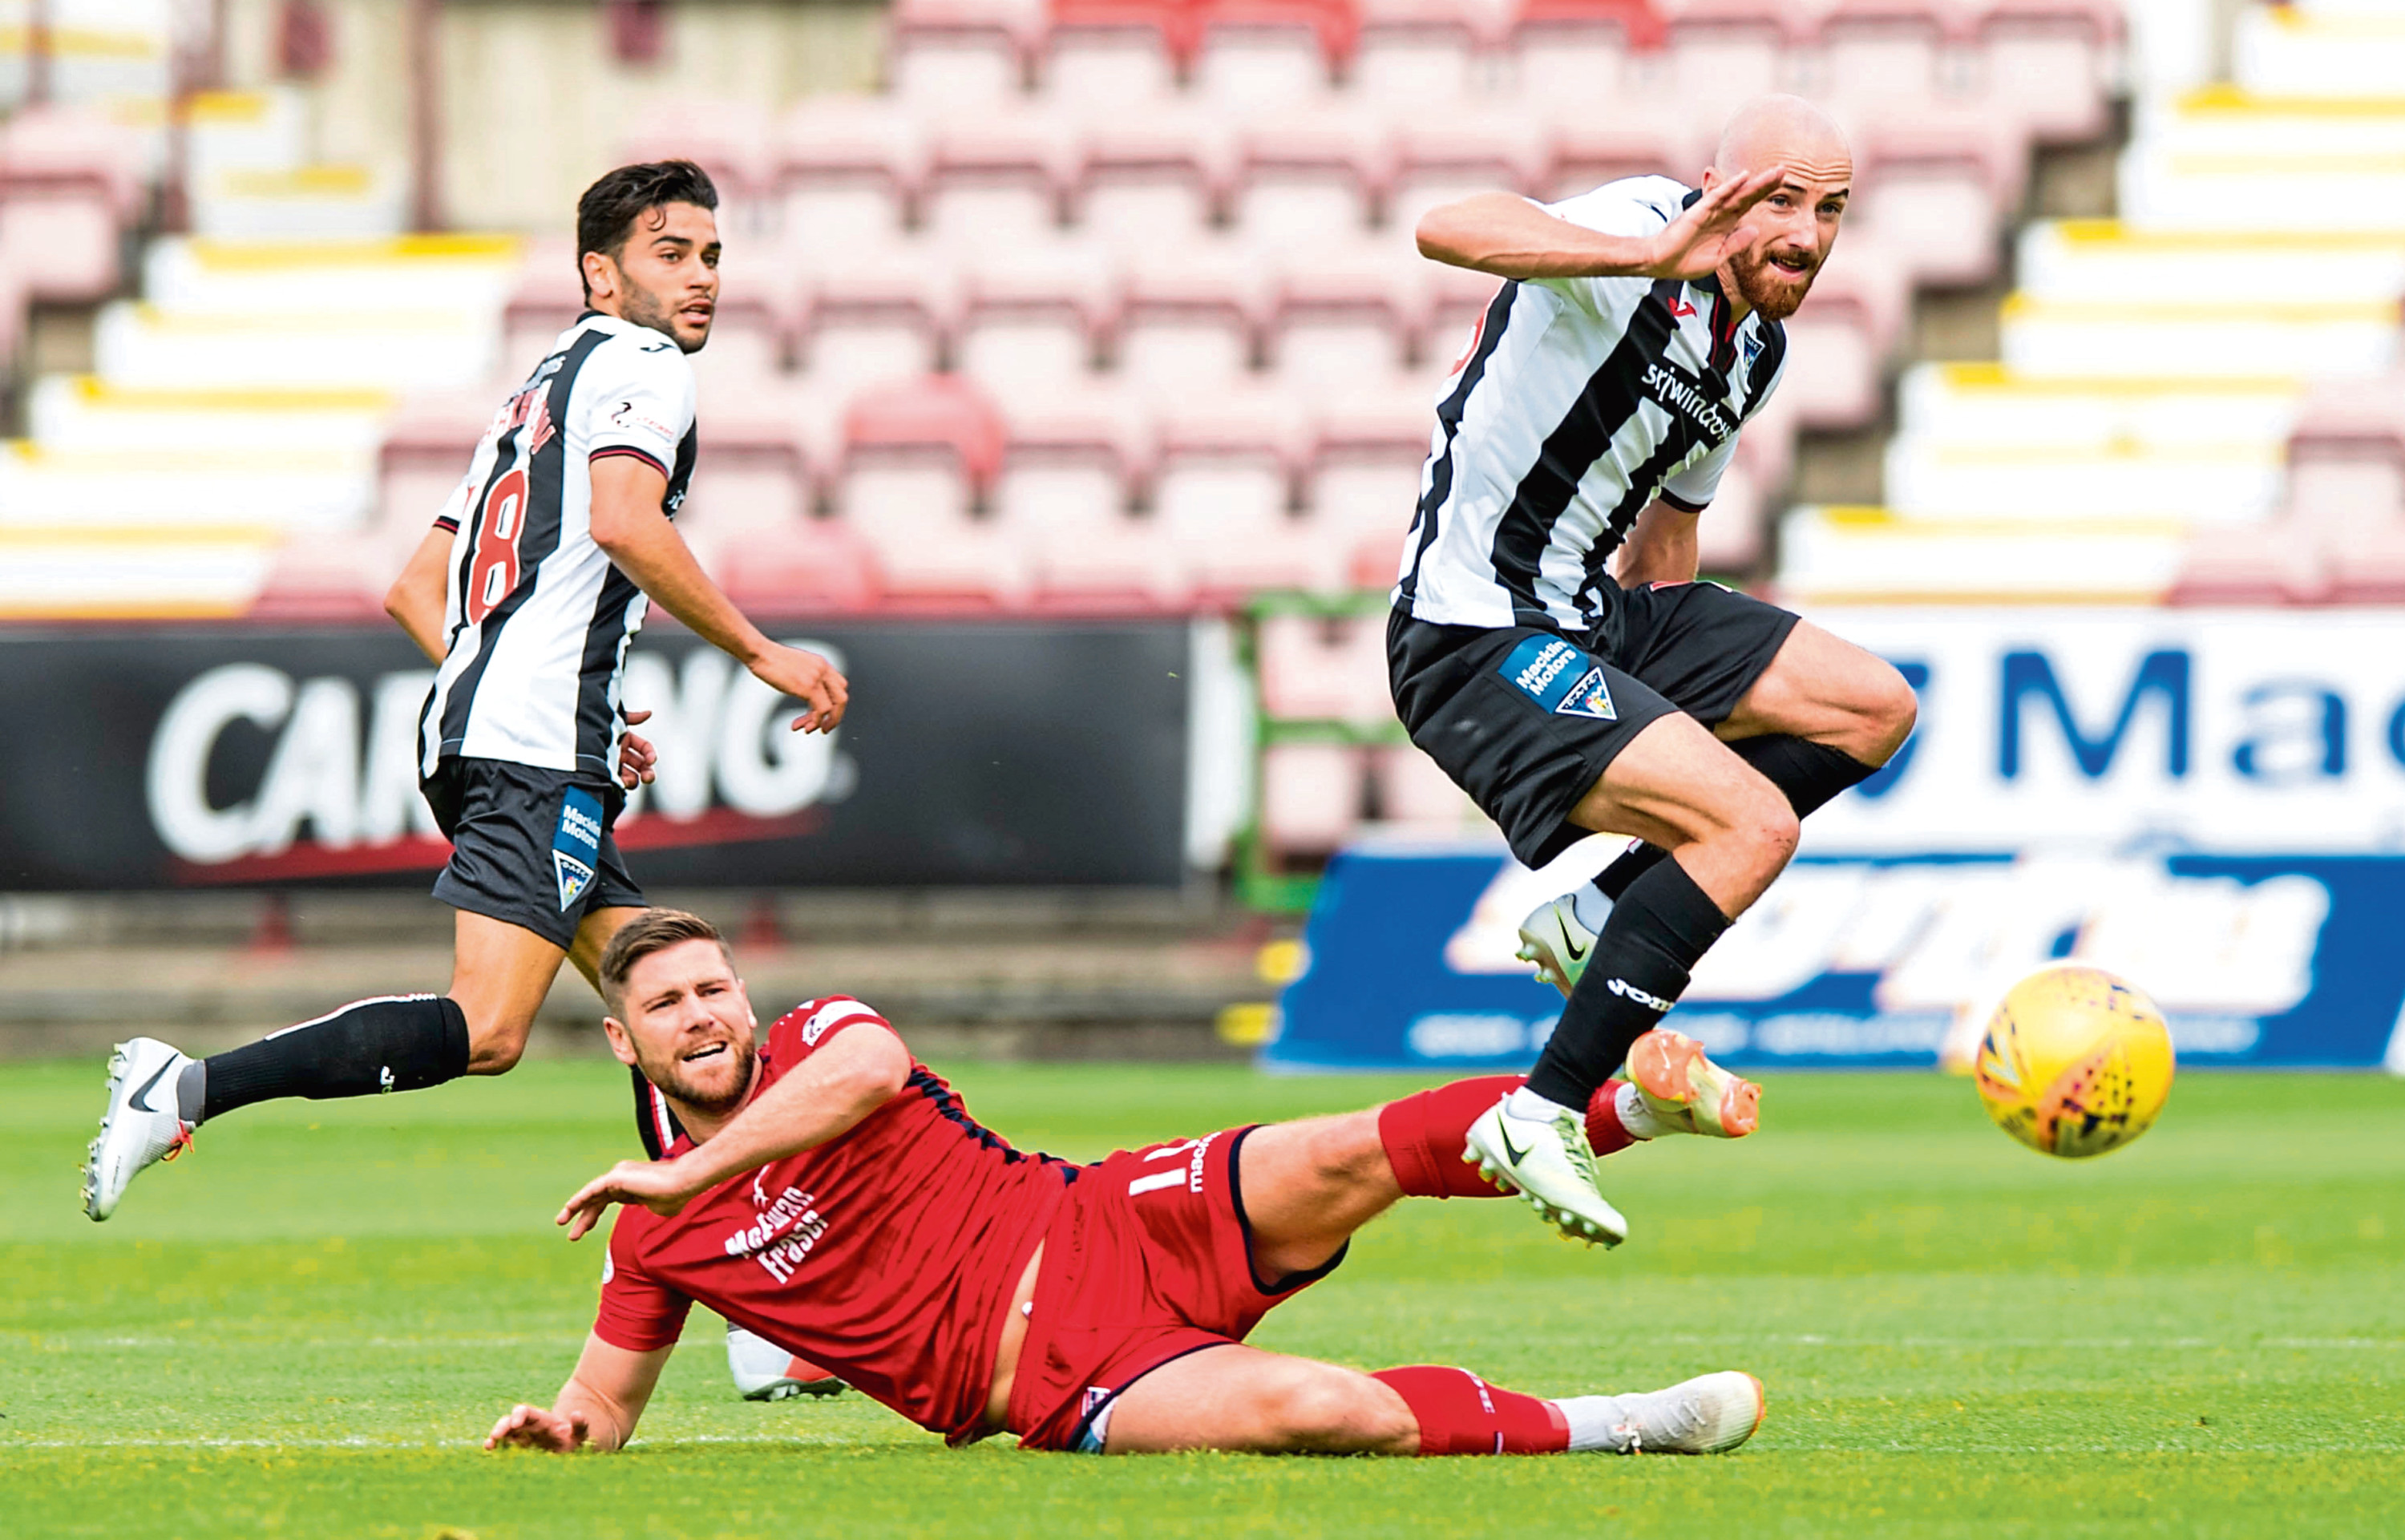 Dundee's Faissal El Bakhtaoui and James Vincent are currently on loan at Dunfermline this season in the Scottish Championship